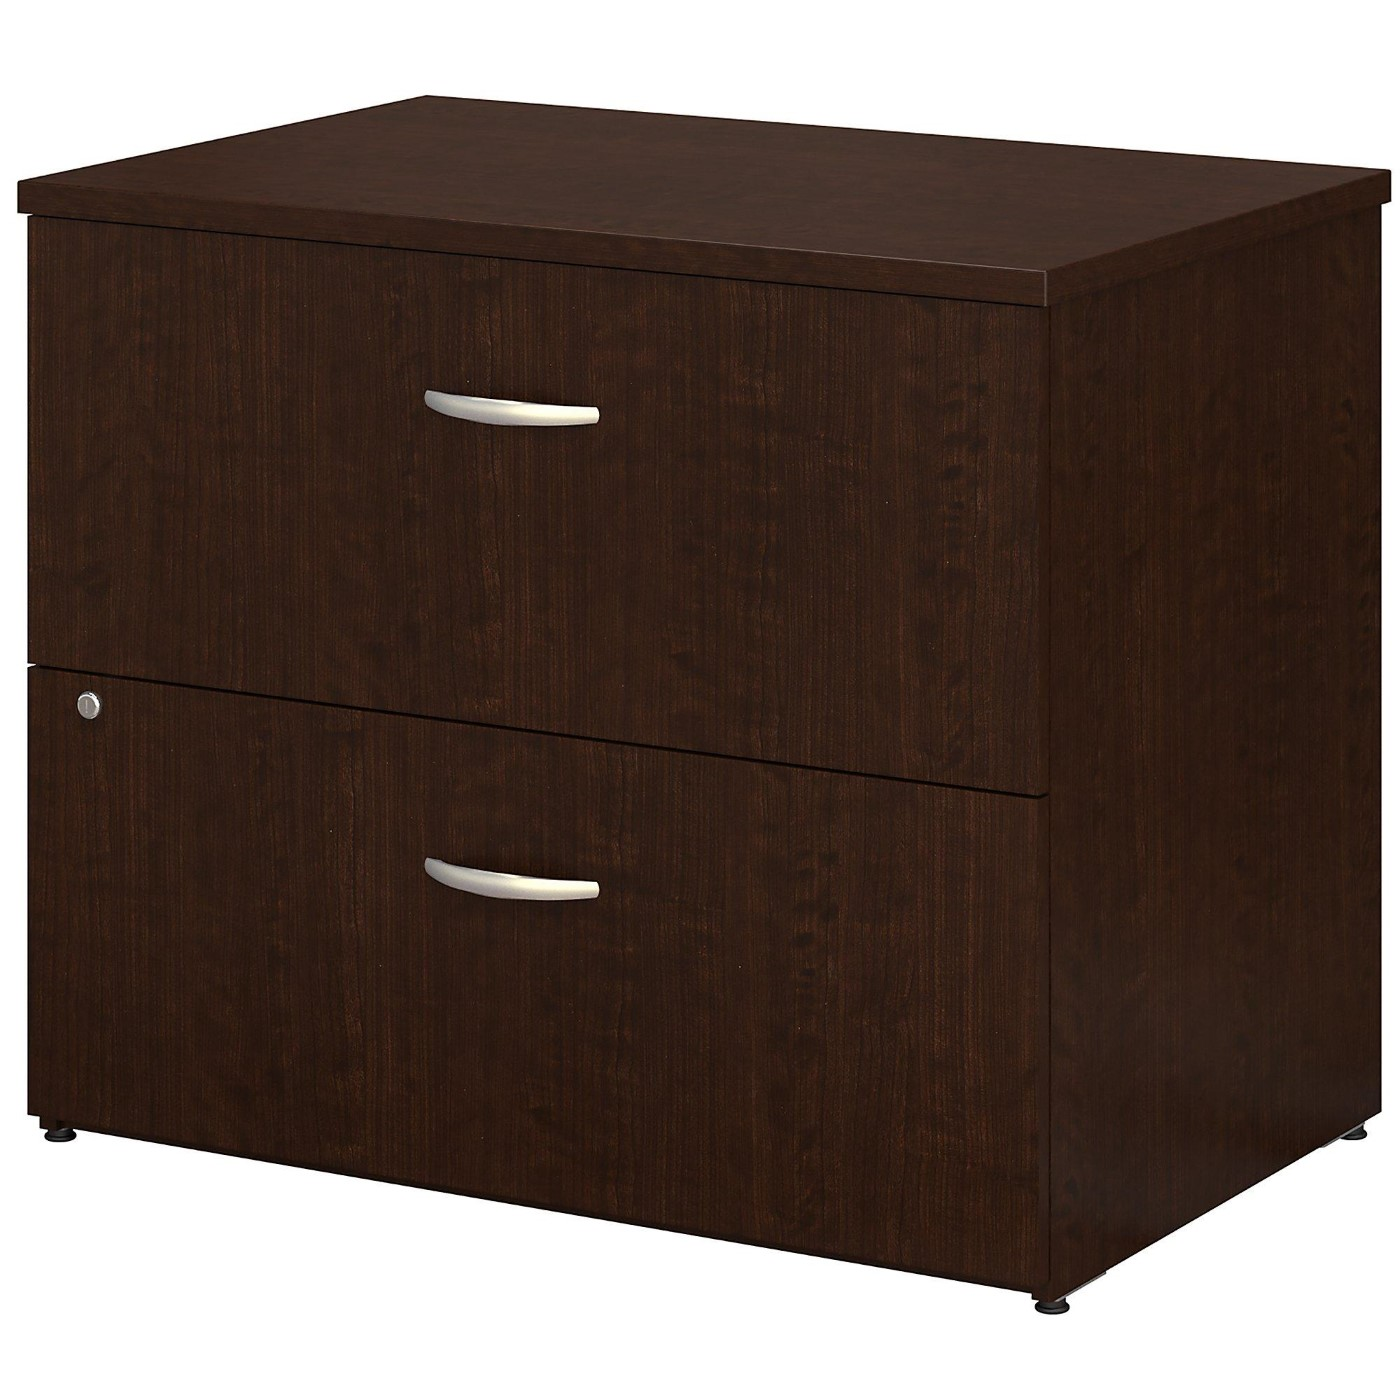 <font color=#c60><b>BUSH BUSINESS FURNITURE SERIES C LATERAL FILE CABINET. FREE SHIPPING</font></b>